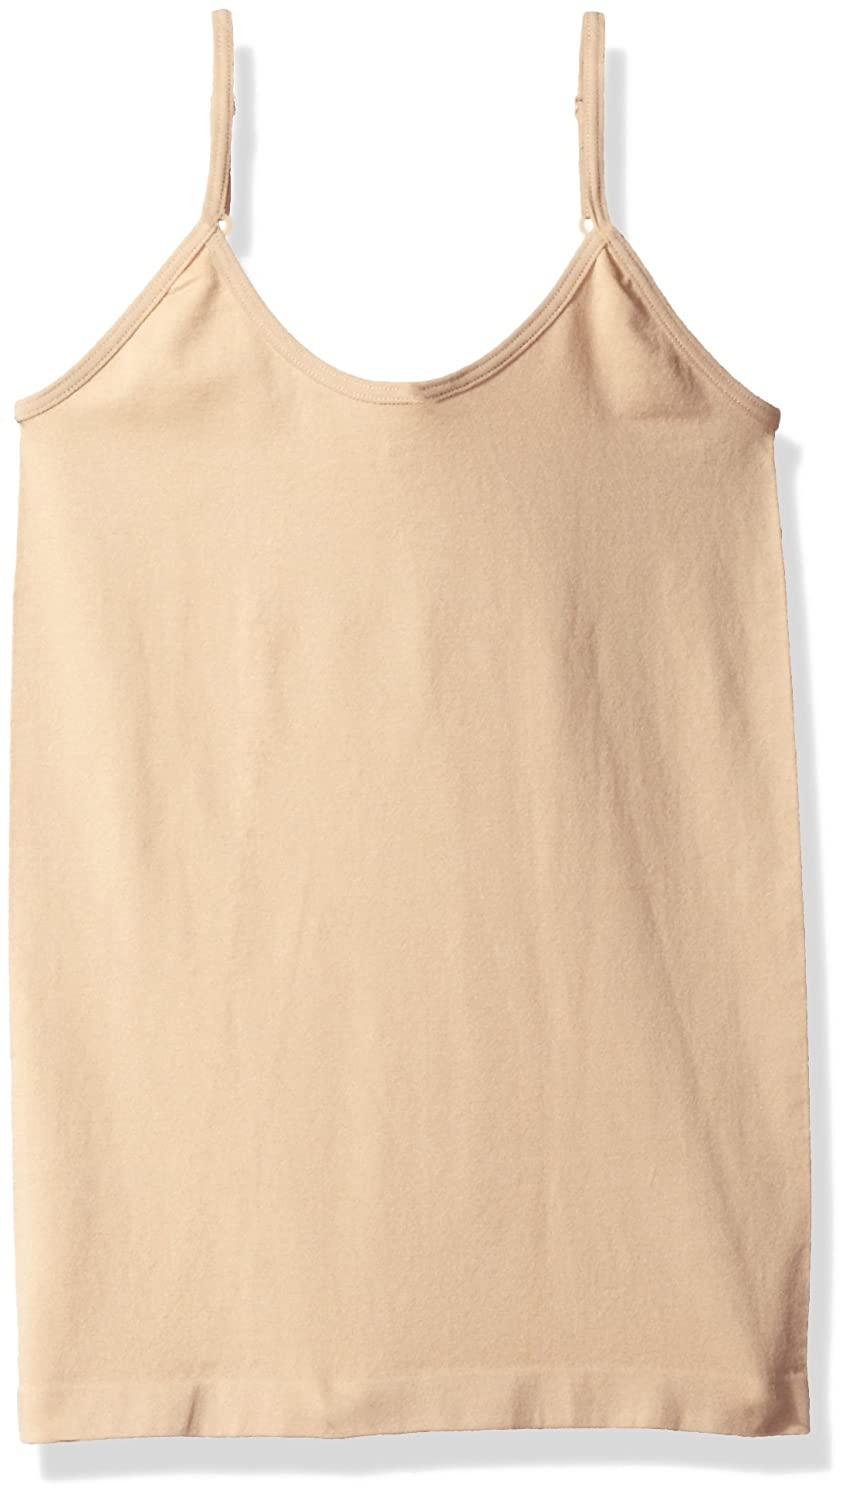 Playground Pals Girls Big Seamless Cami